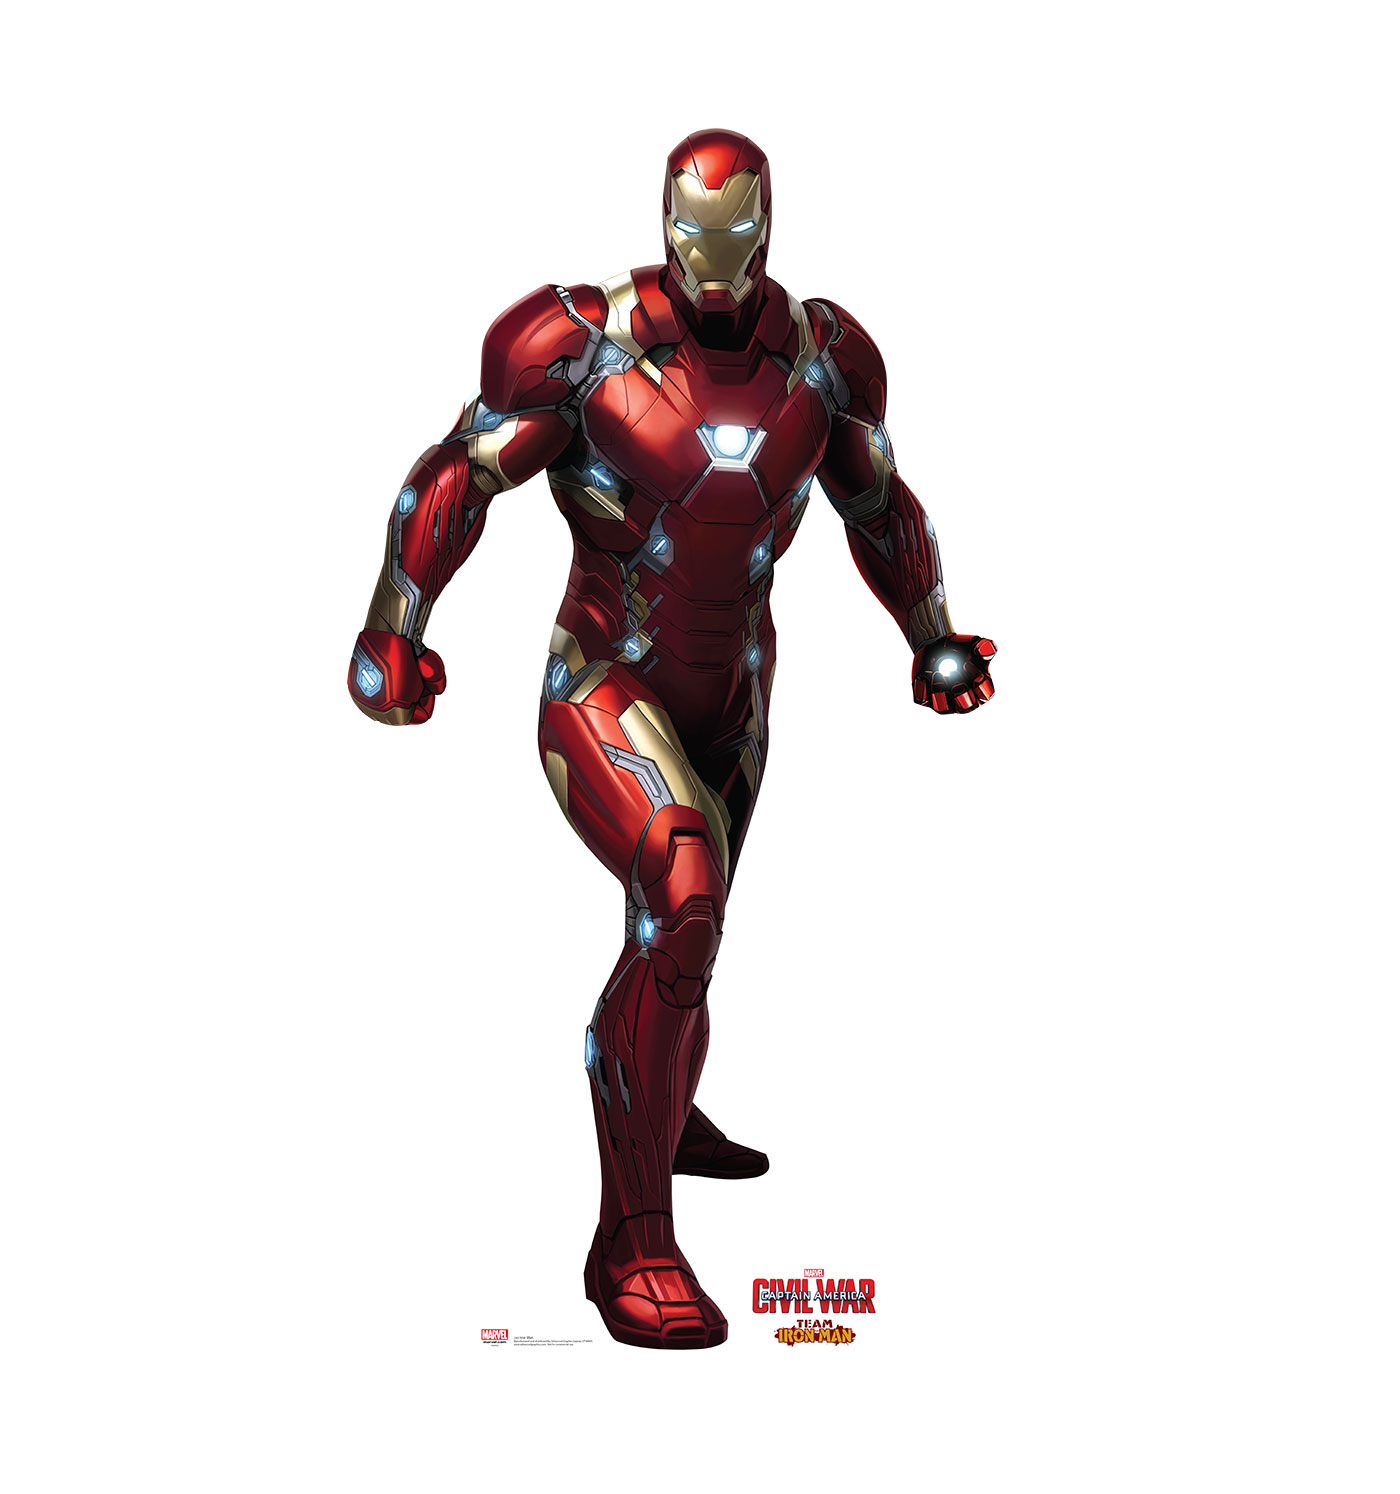 captain-america-civil-war-artwork-iron-man-1